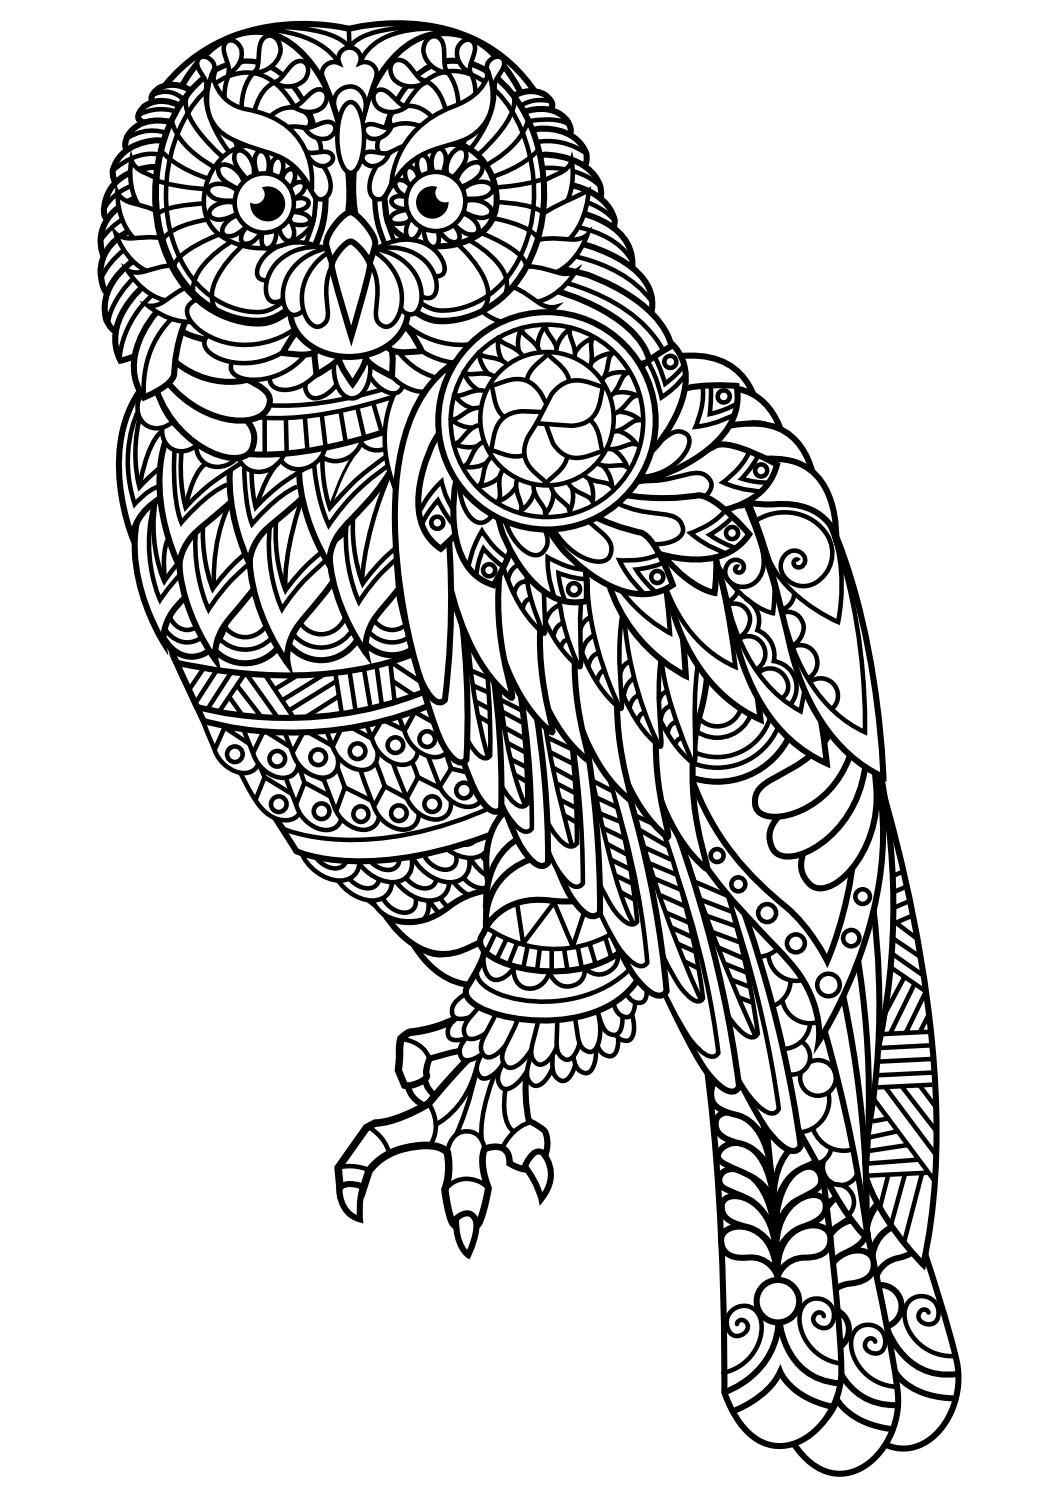 Adult Wolf Coloring Pages at GetColorings.com | Free ...